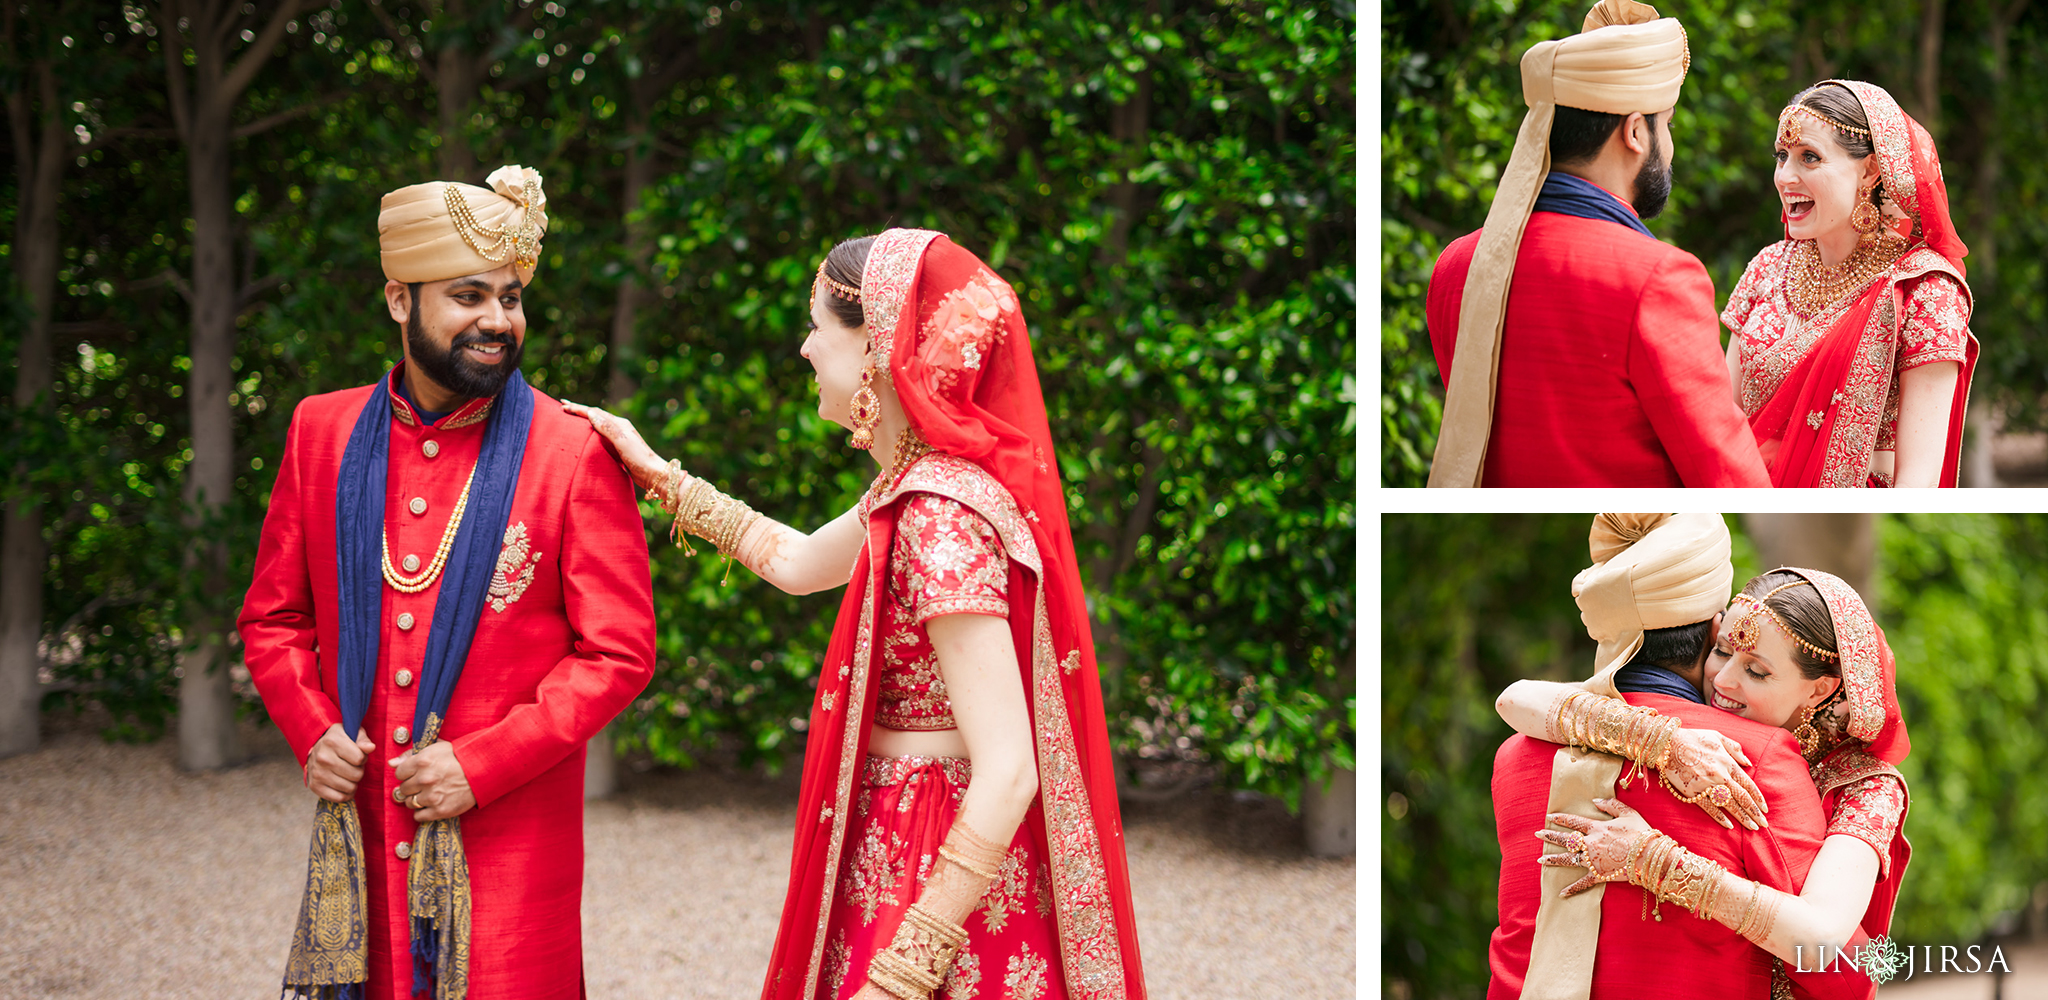 11 Hotel Irvine Multicultural Indian Wedding Photography